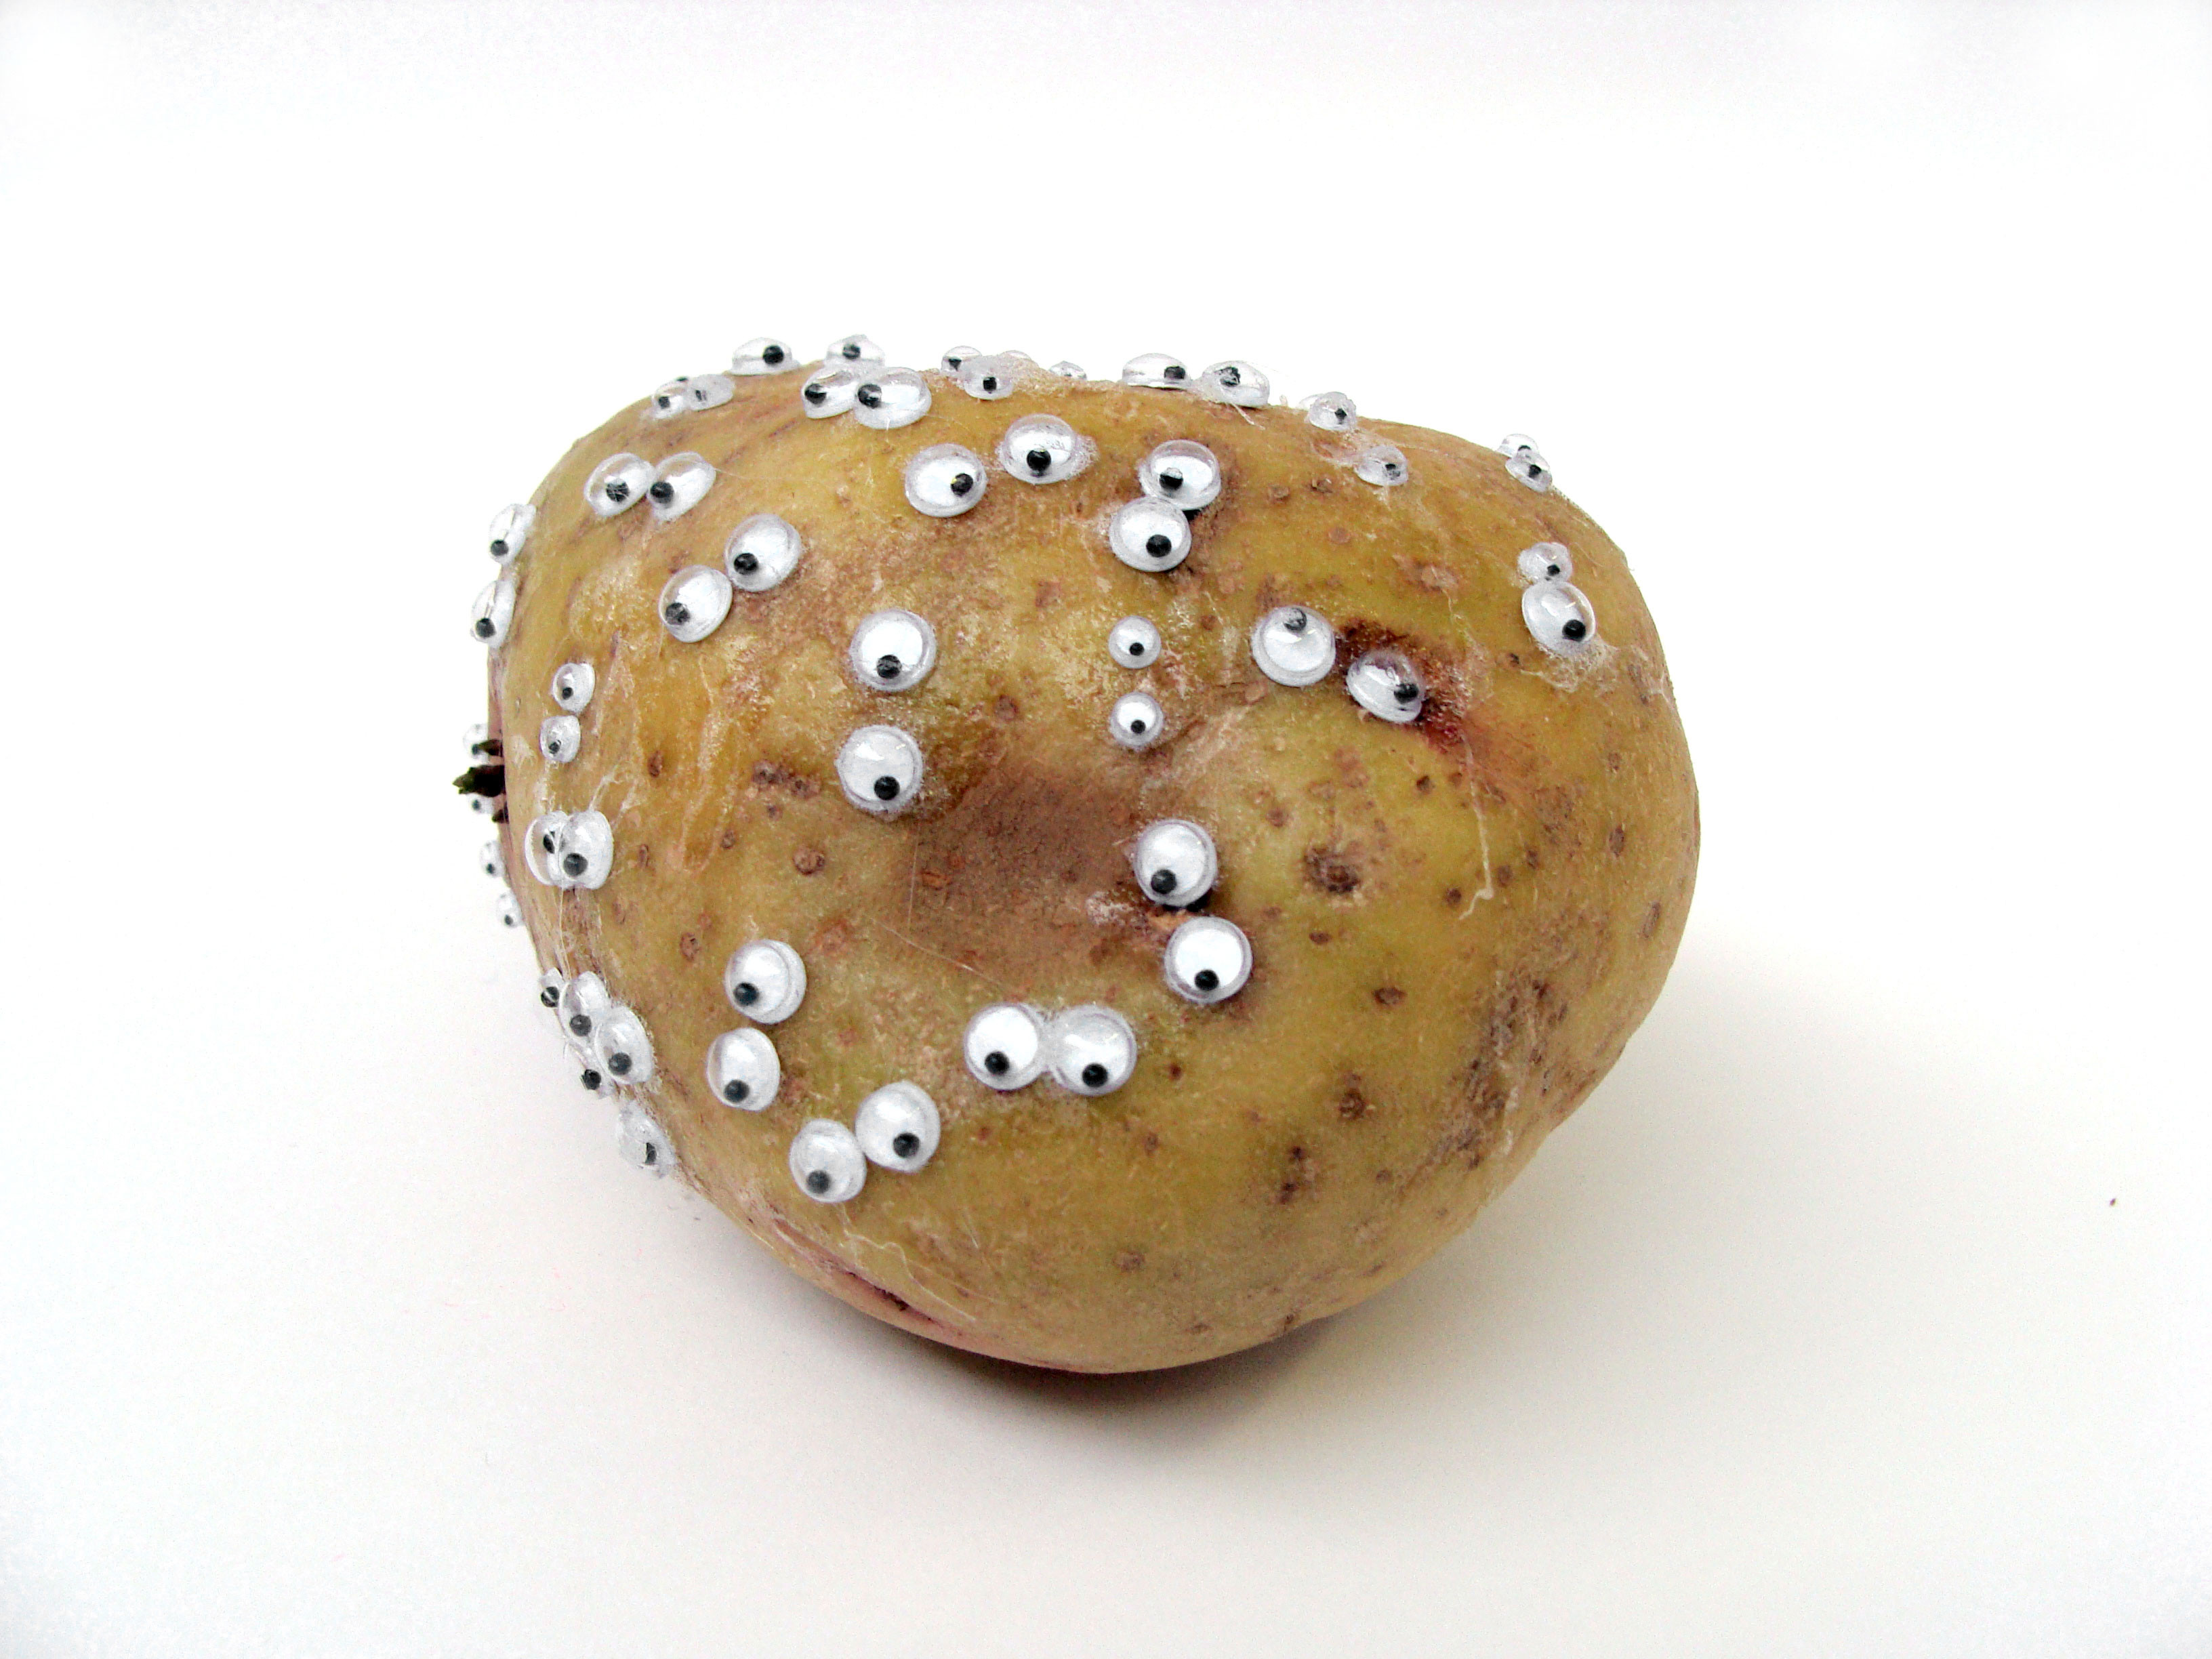 Potato With Eyes  MWO Forums Potatoes Page 3